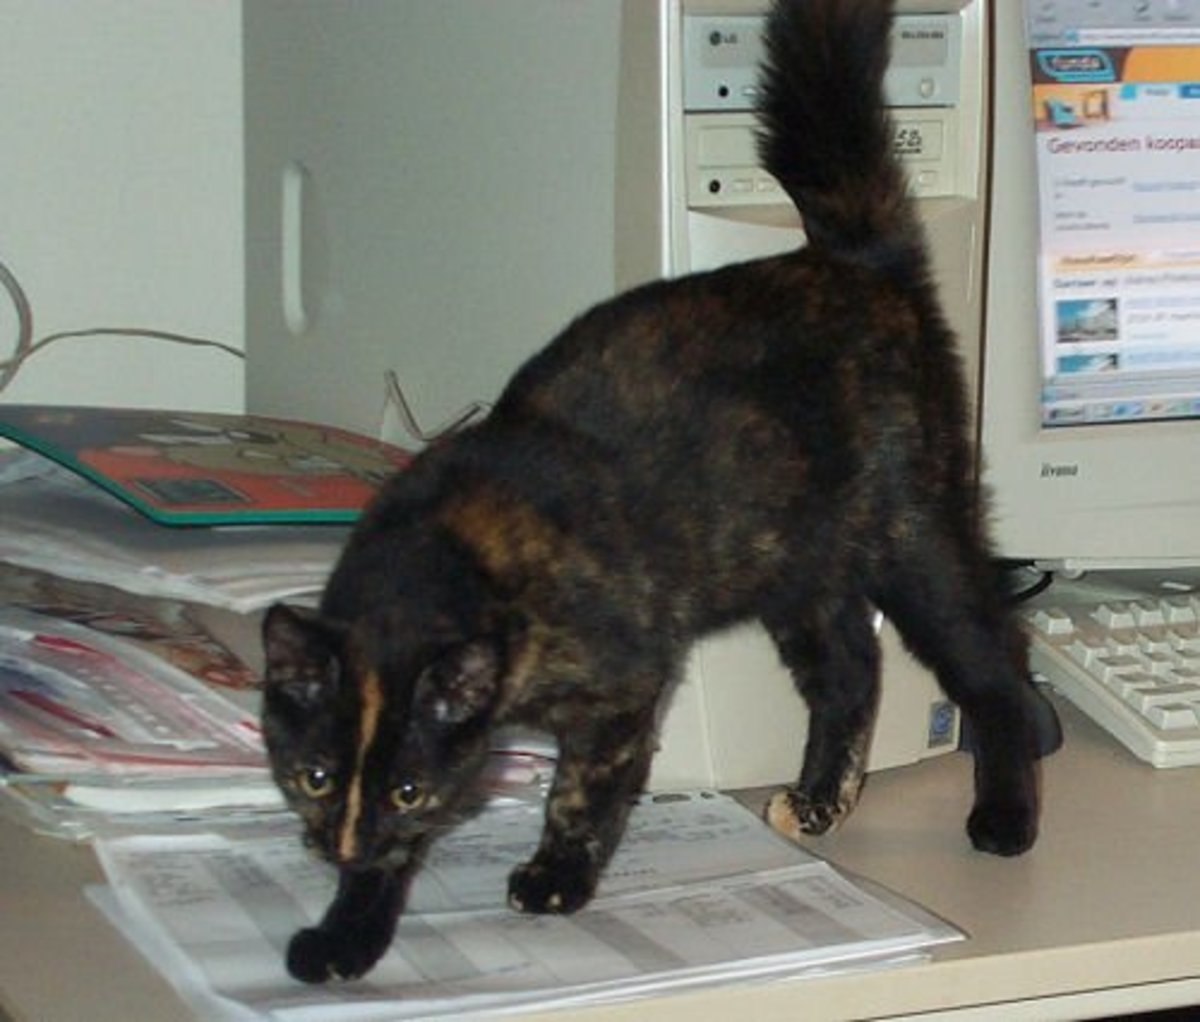 Differences Between Tortoiseshell and Calico Cats